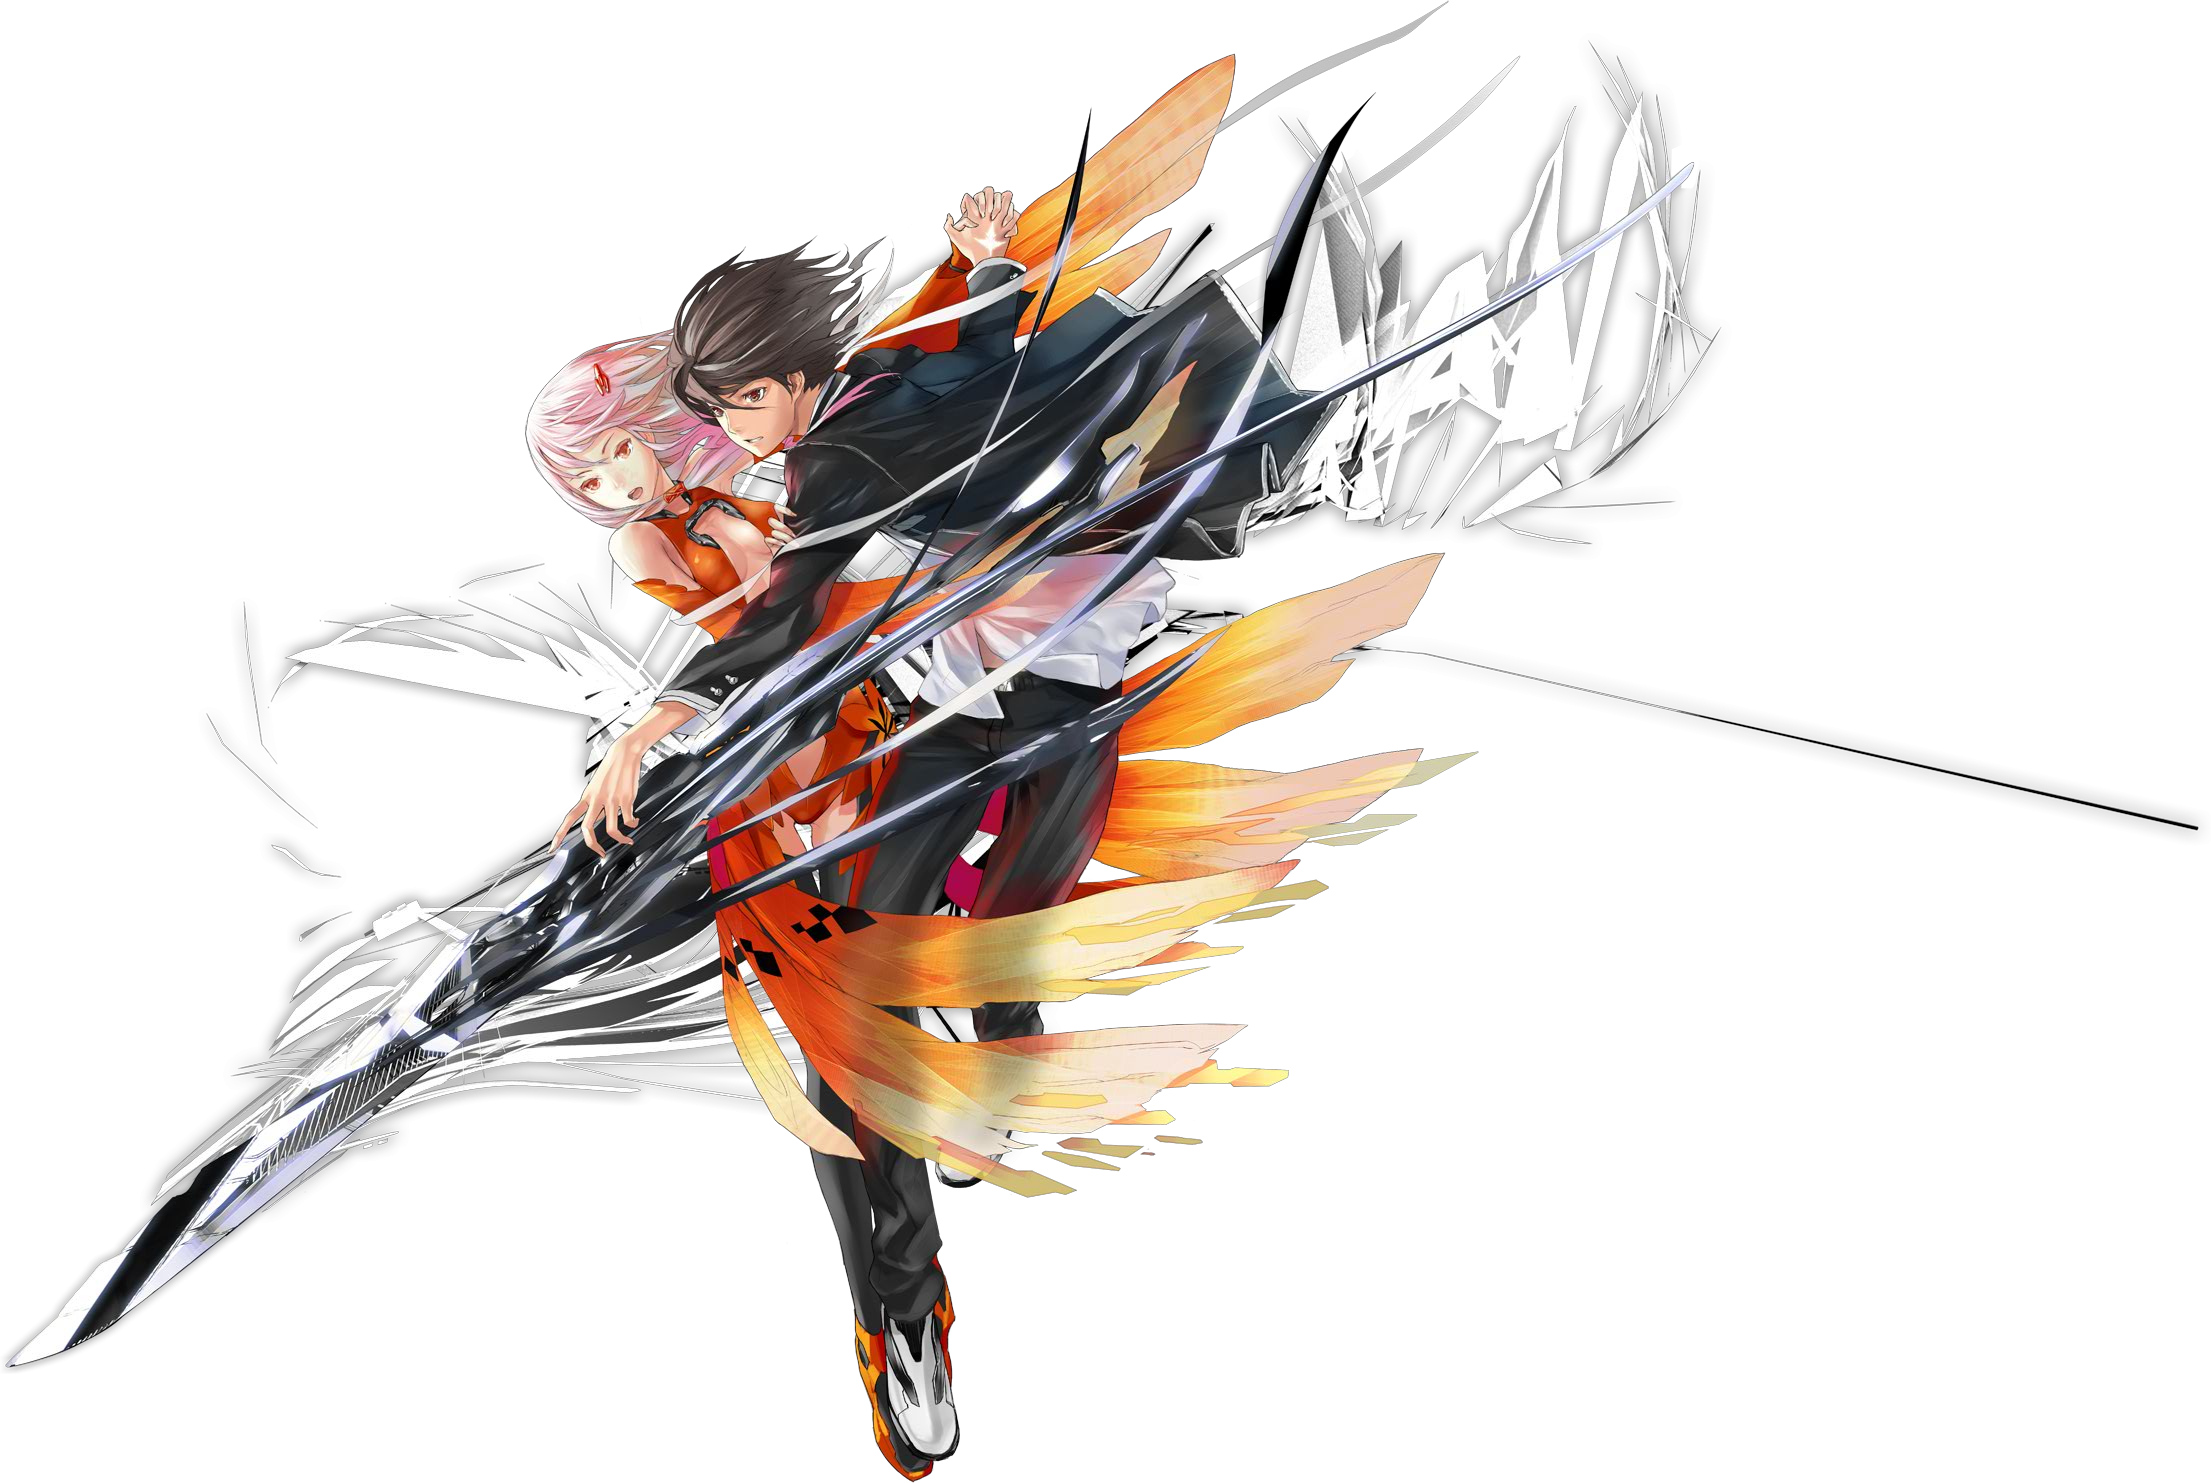 -http://images5.fanpop.com/image/photos/27200000/GUILTY-CROWN-INORI-AND-SHU-guilty-crown-27258724-2211-1483.jpg